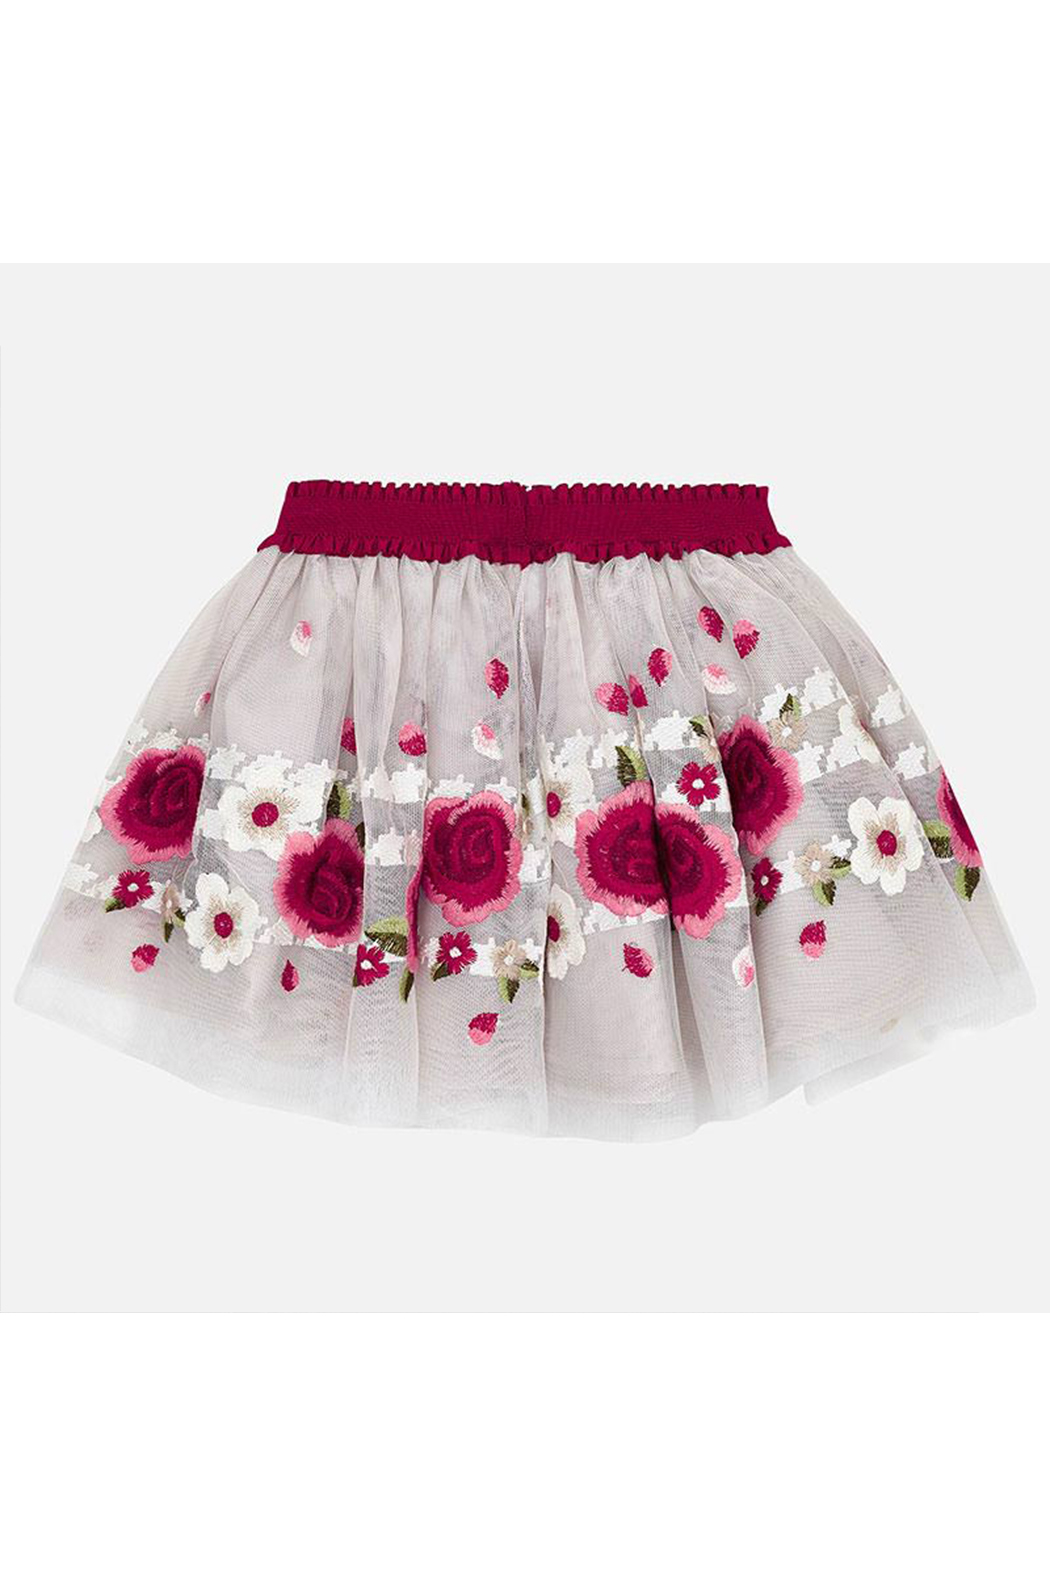 Mayoral Rojo Embroidered Skirt - Main Image